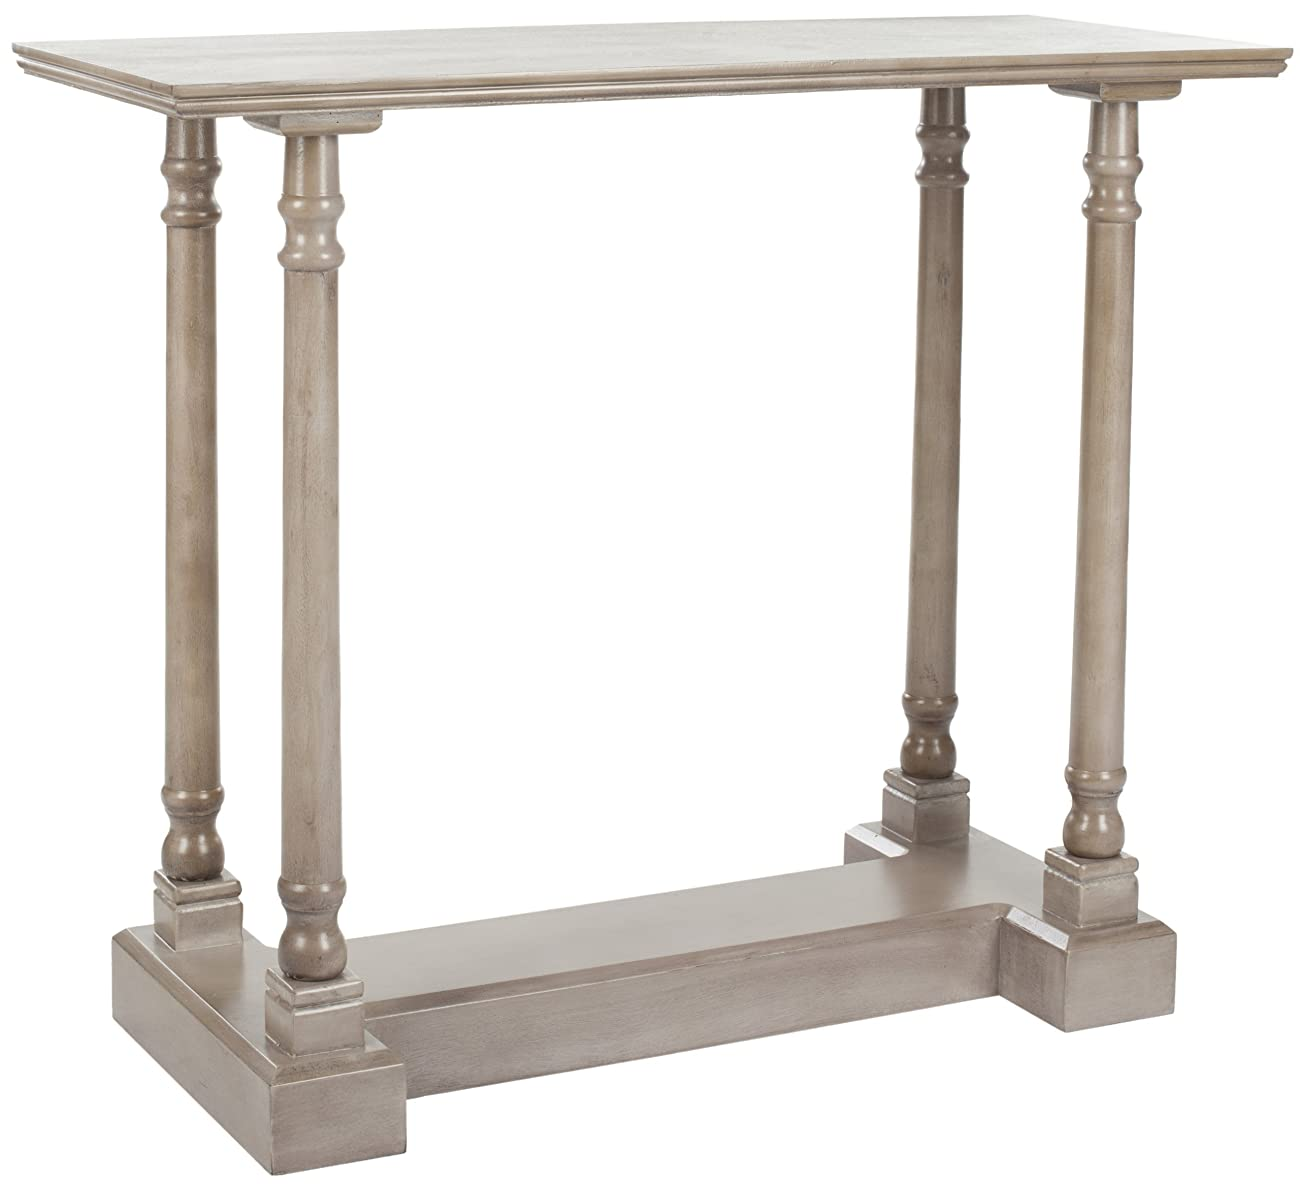 Safavieh American Home Collection Concord Console Table, Vintage Grey 2